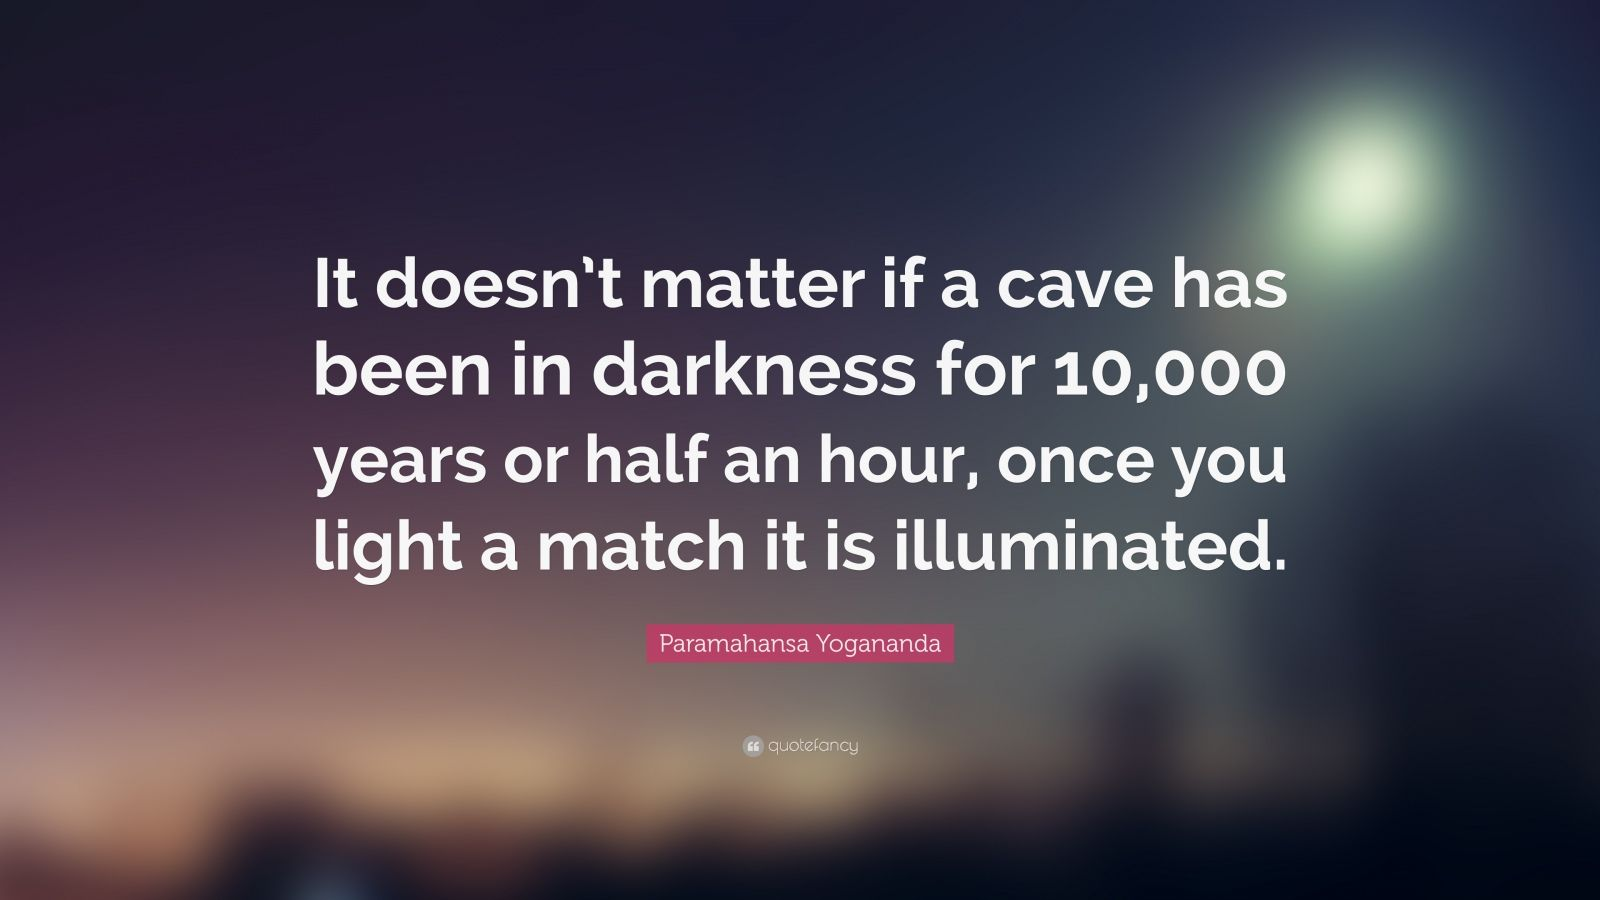 "Paramahansa Yogananda Quote: ""It doesn't matter if a cave has been in darkness for 10,000 years or half an hour, once you light a match it is illuminated."""